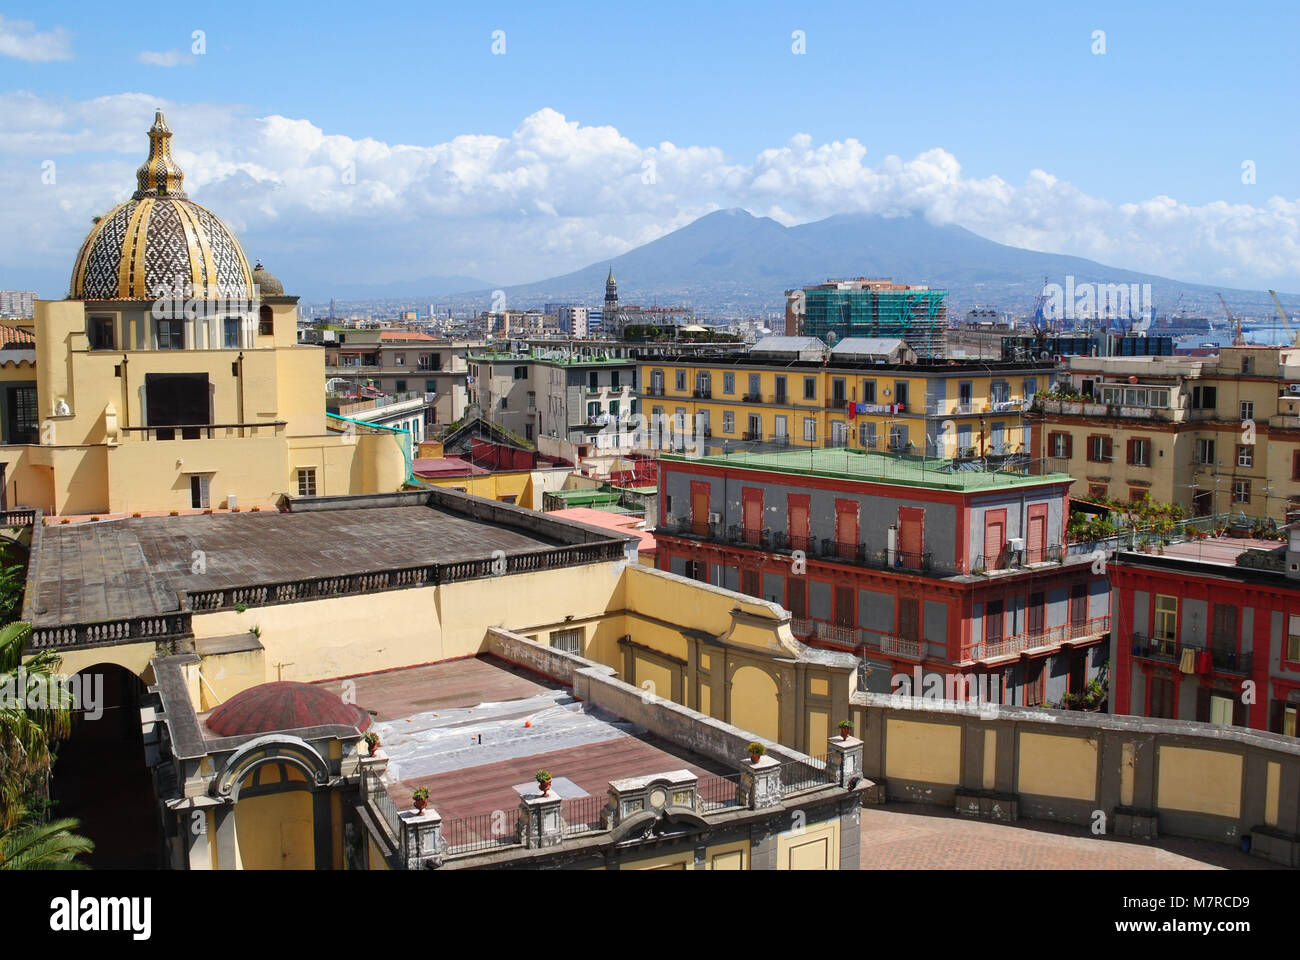 Mount Vesuvius seen from the Complex of Saints Marcellin and Festo. - Stock Image